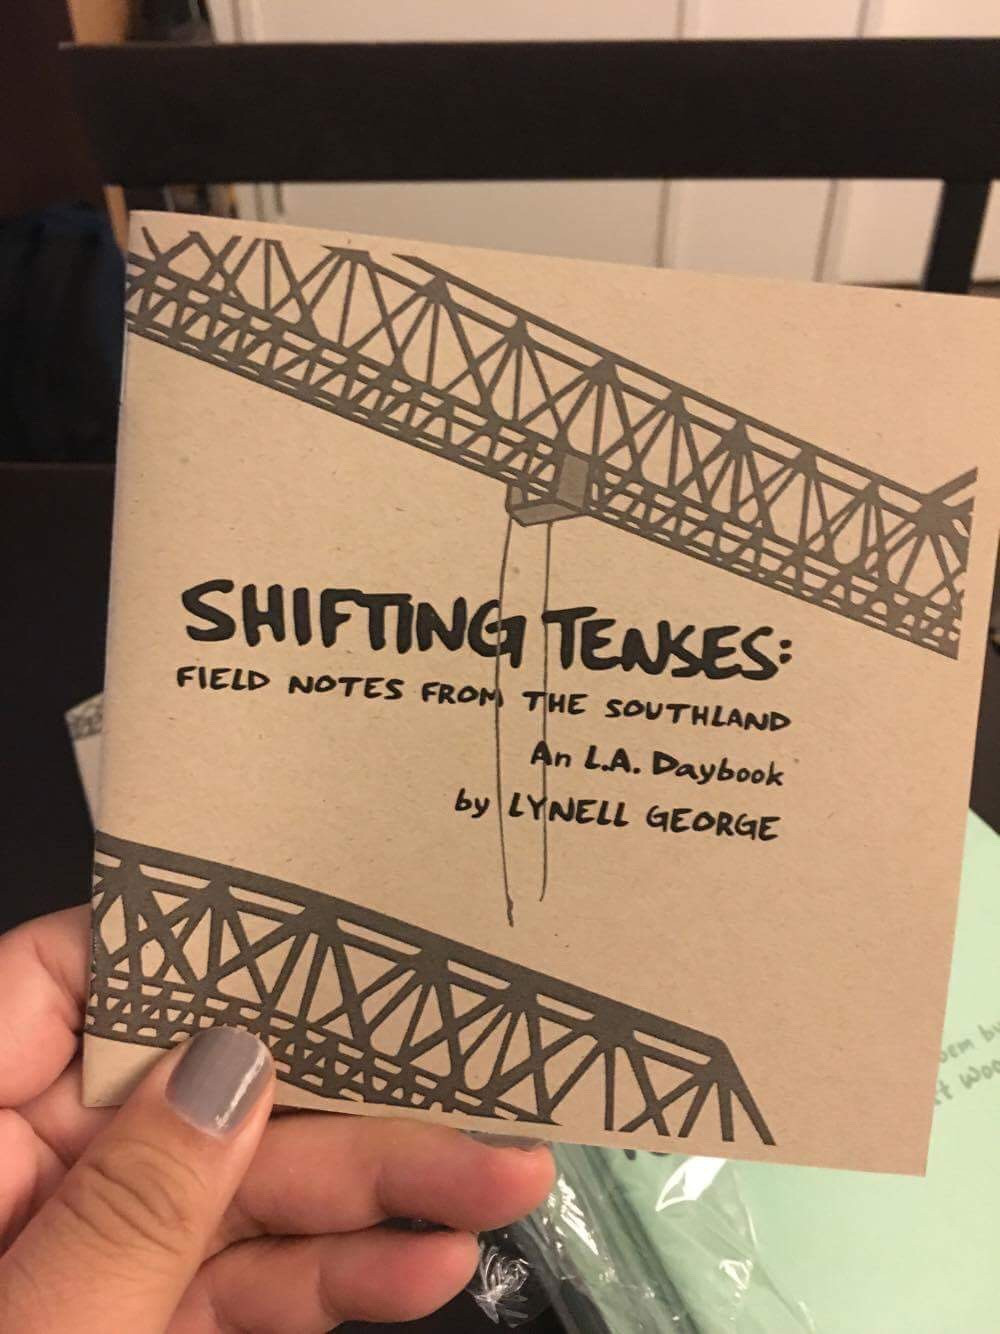 Shifting Tenses - Field Notes from the Southland